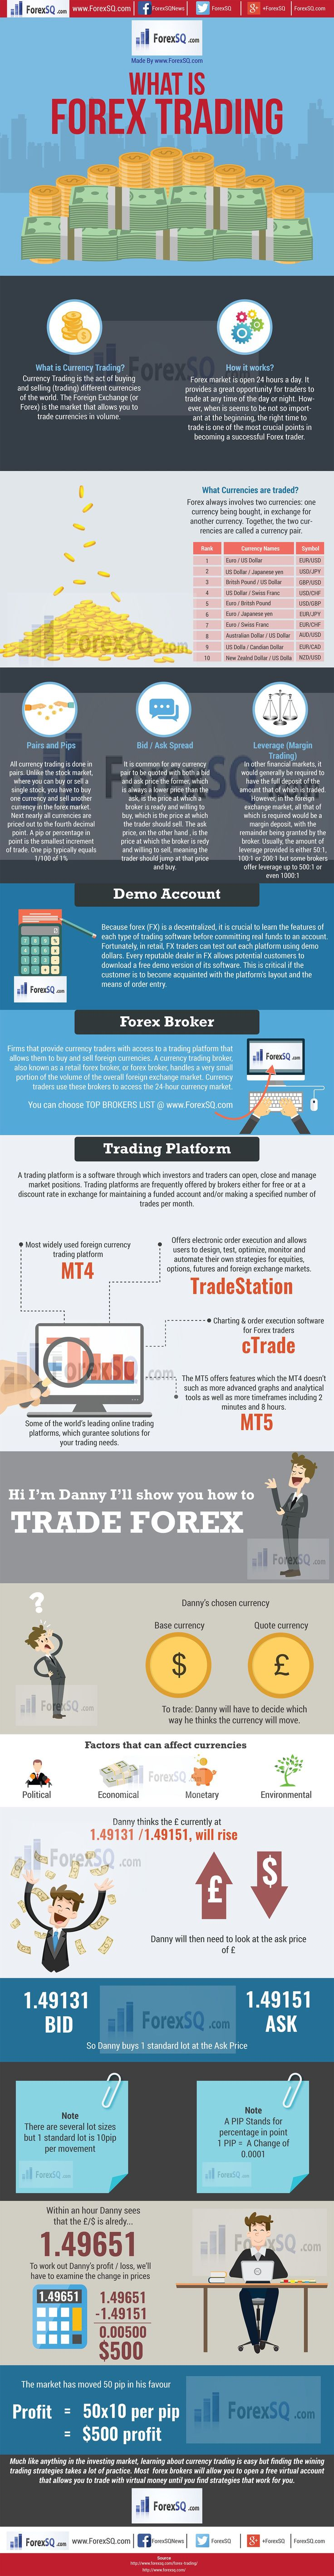 Trading infographic : Forex Trading Definition for Beginners by ForexSQ #Infographic #Trading